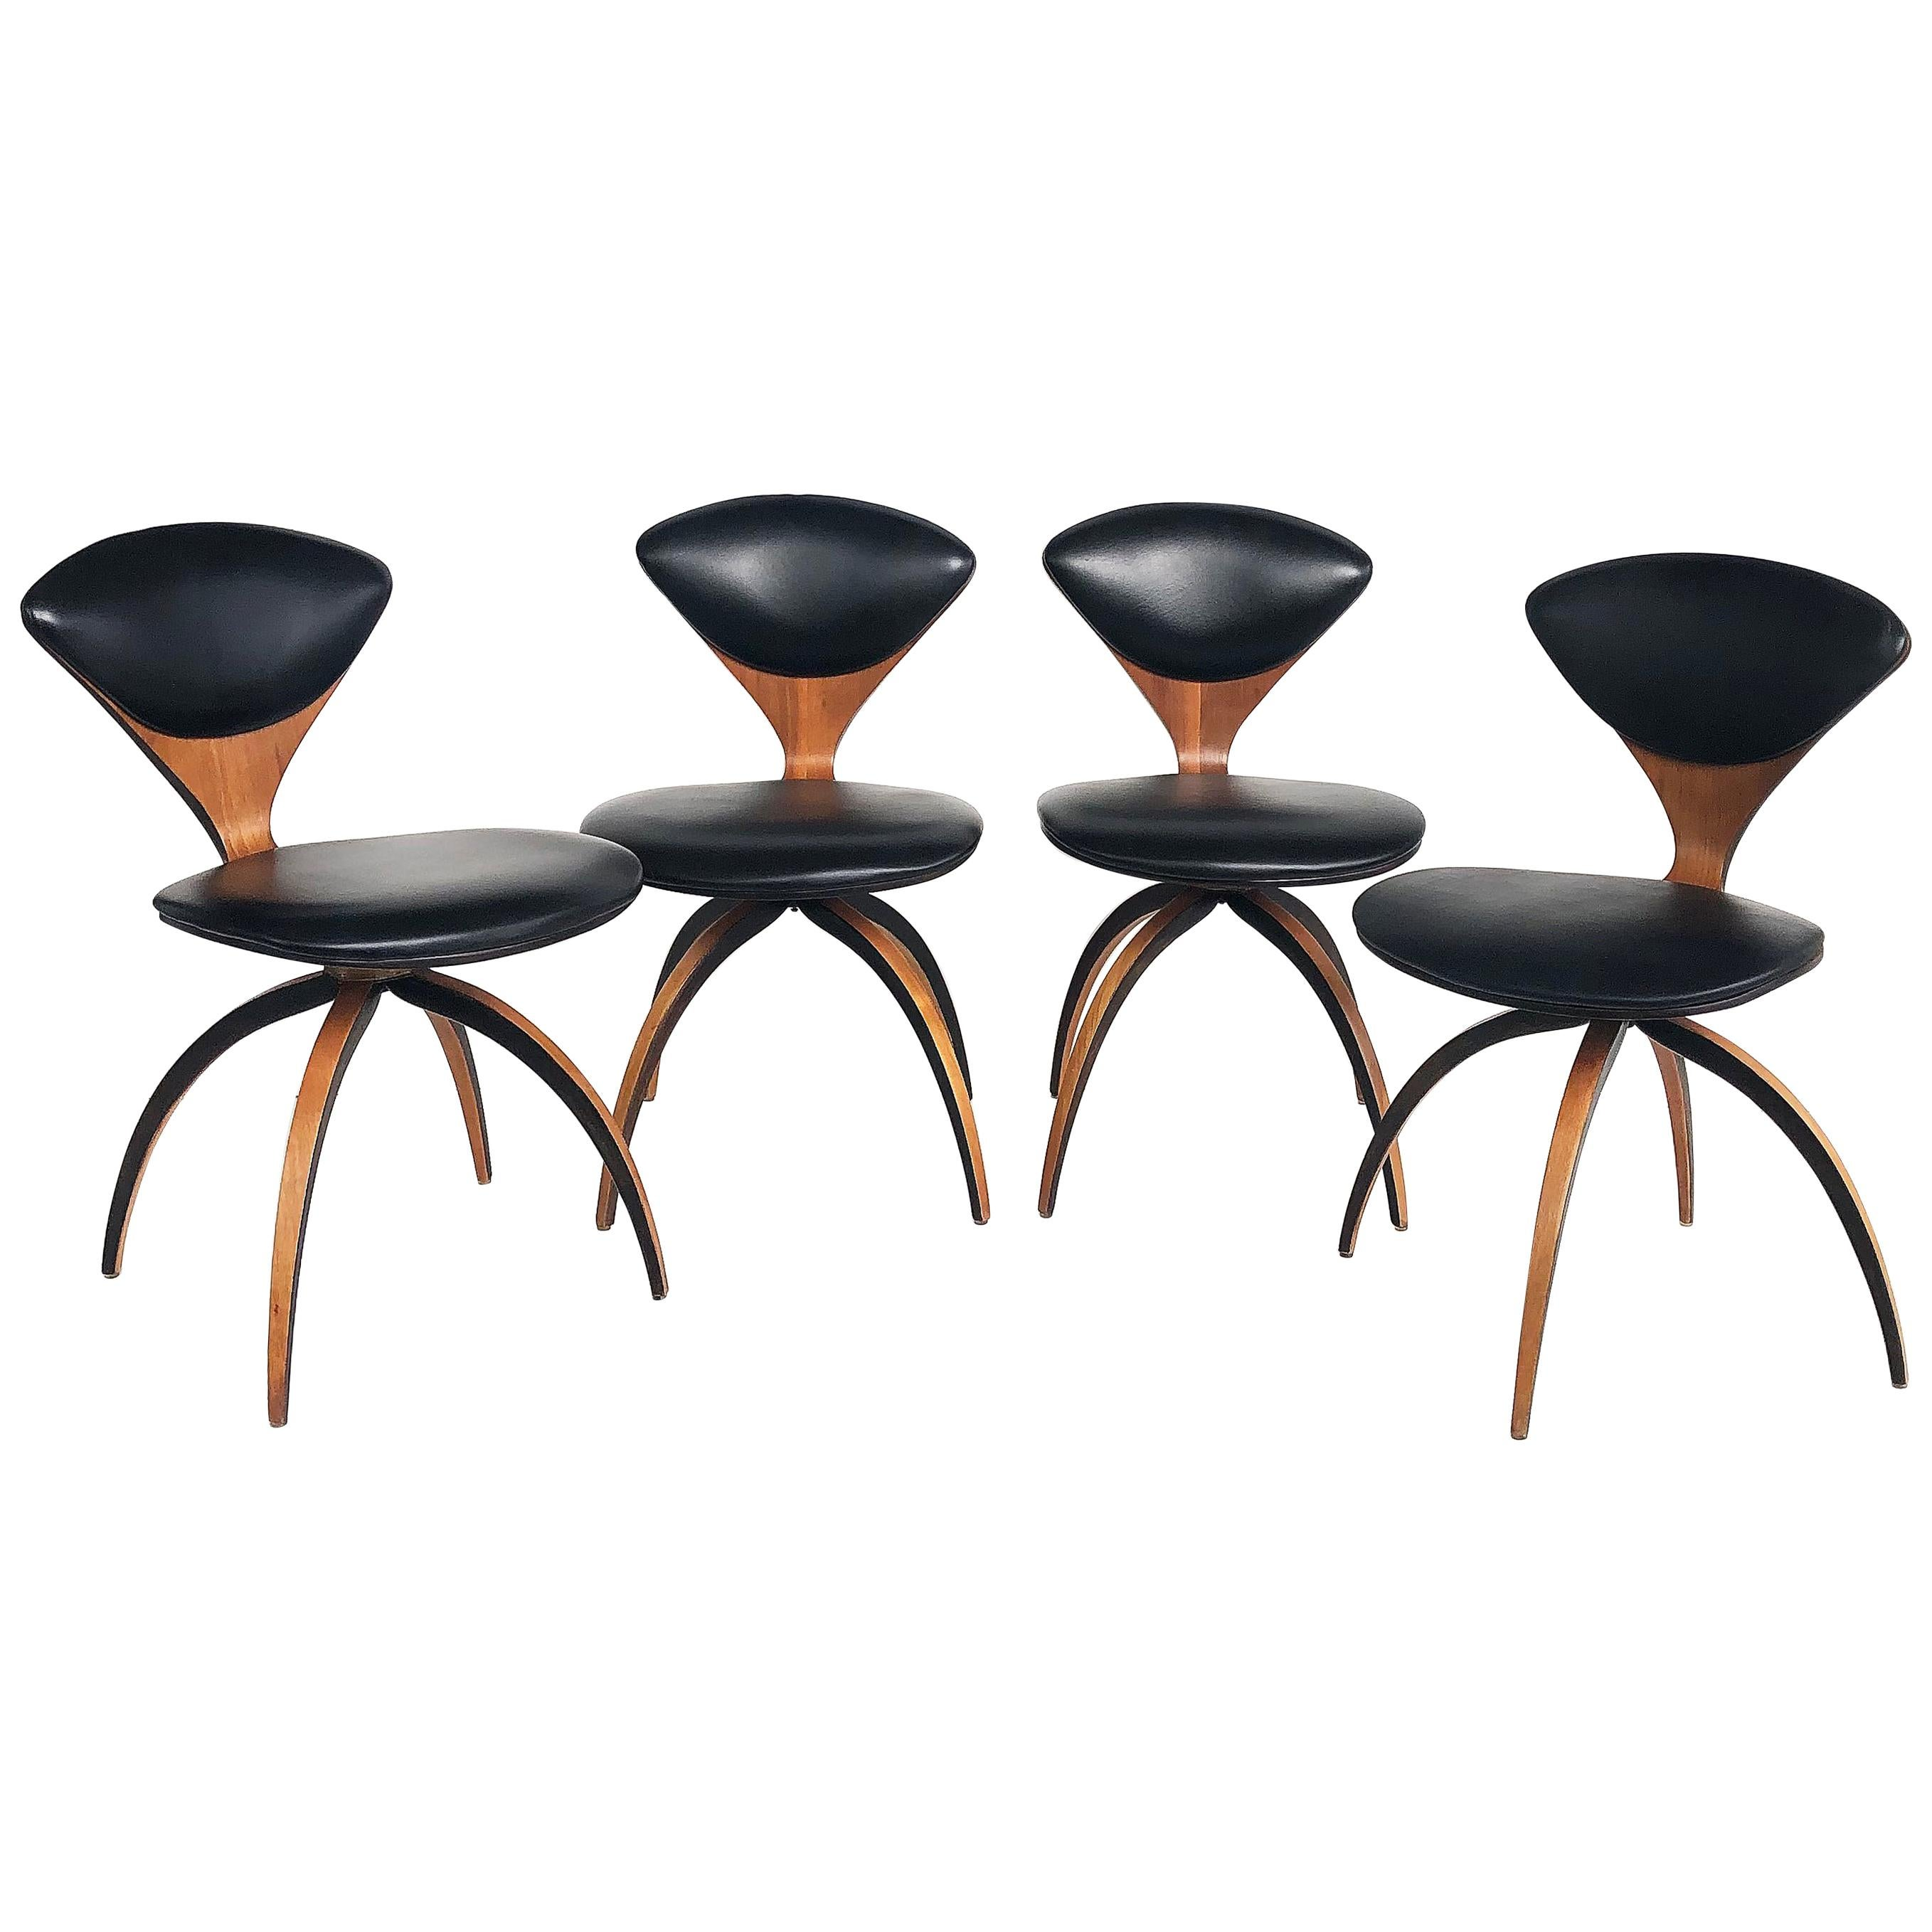 Norman Cherner Plycraft Bentwood Swivel Chairs, 1964 Set of 4